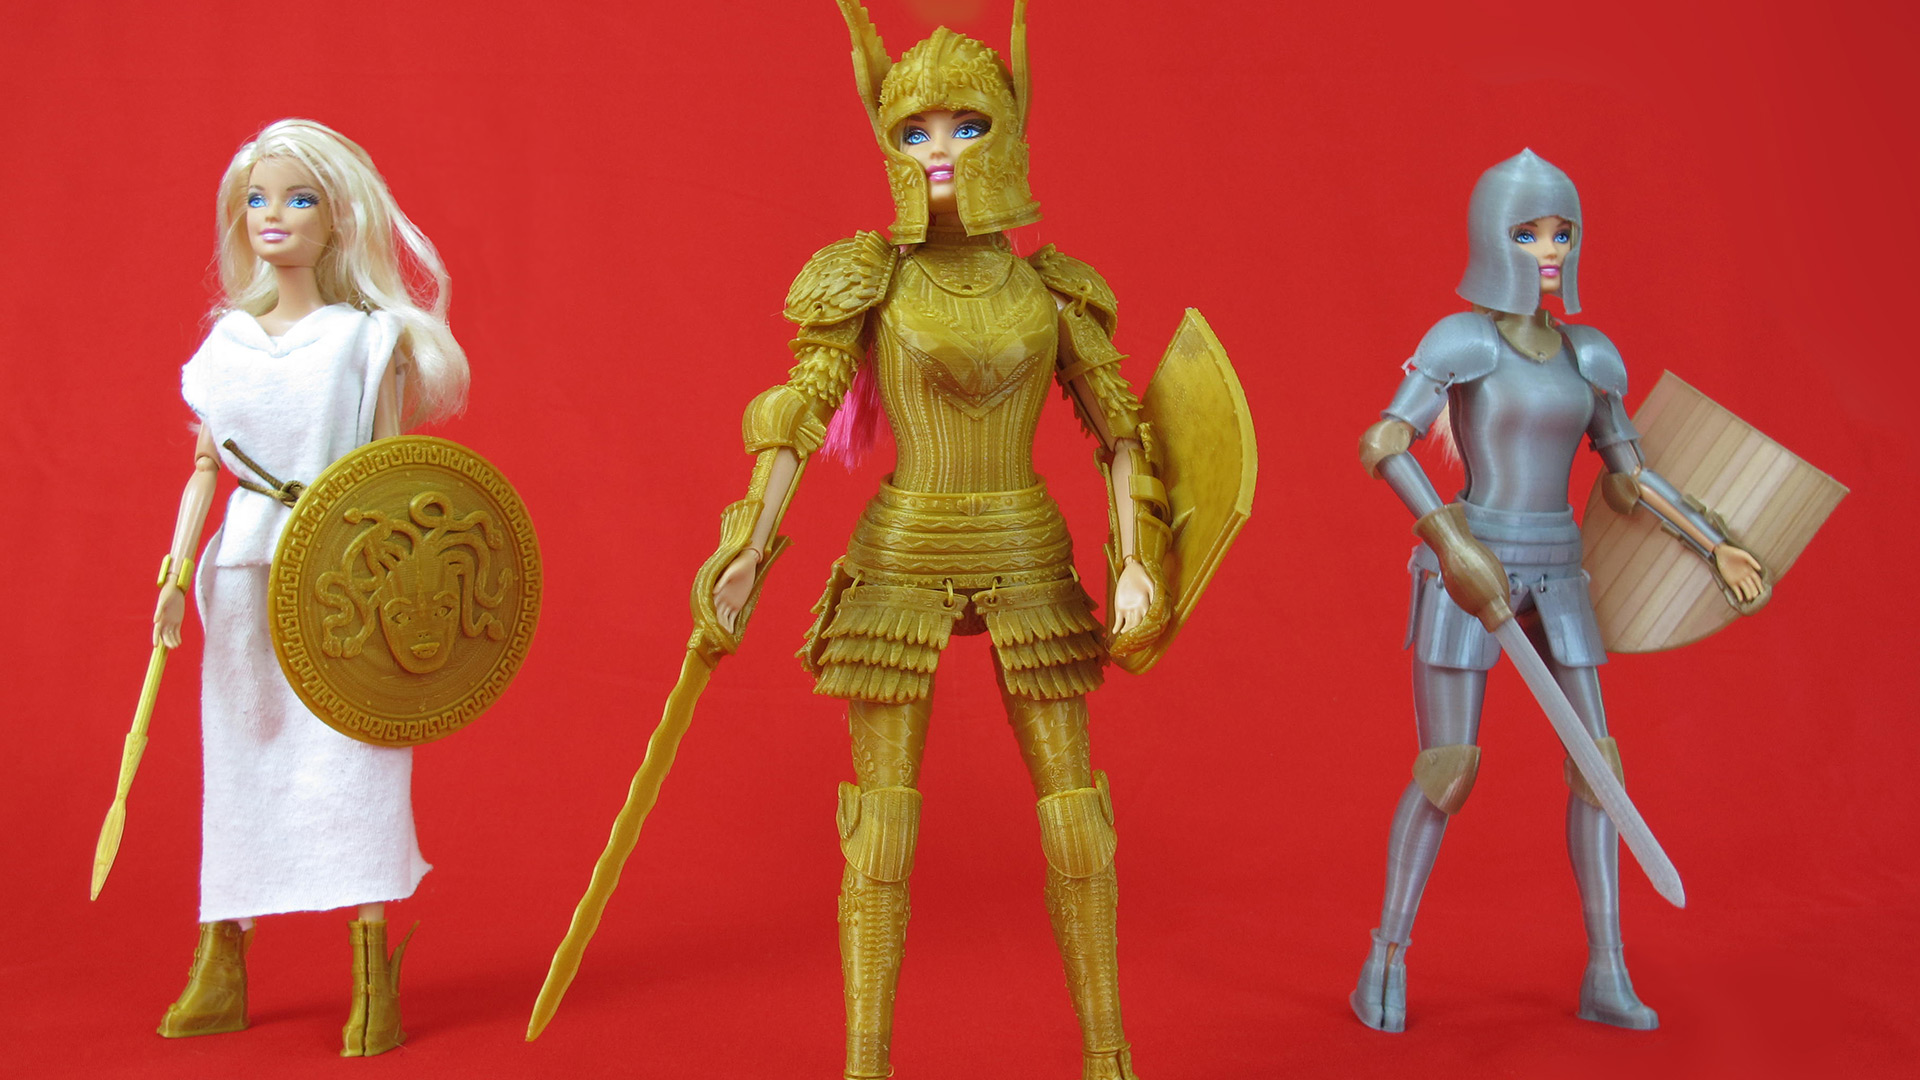 Barbie armored trio | Sheknows.com